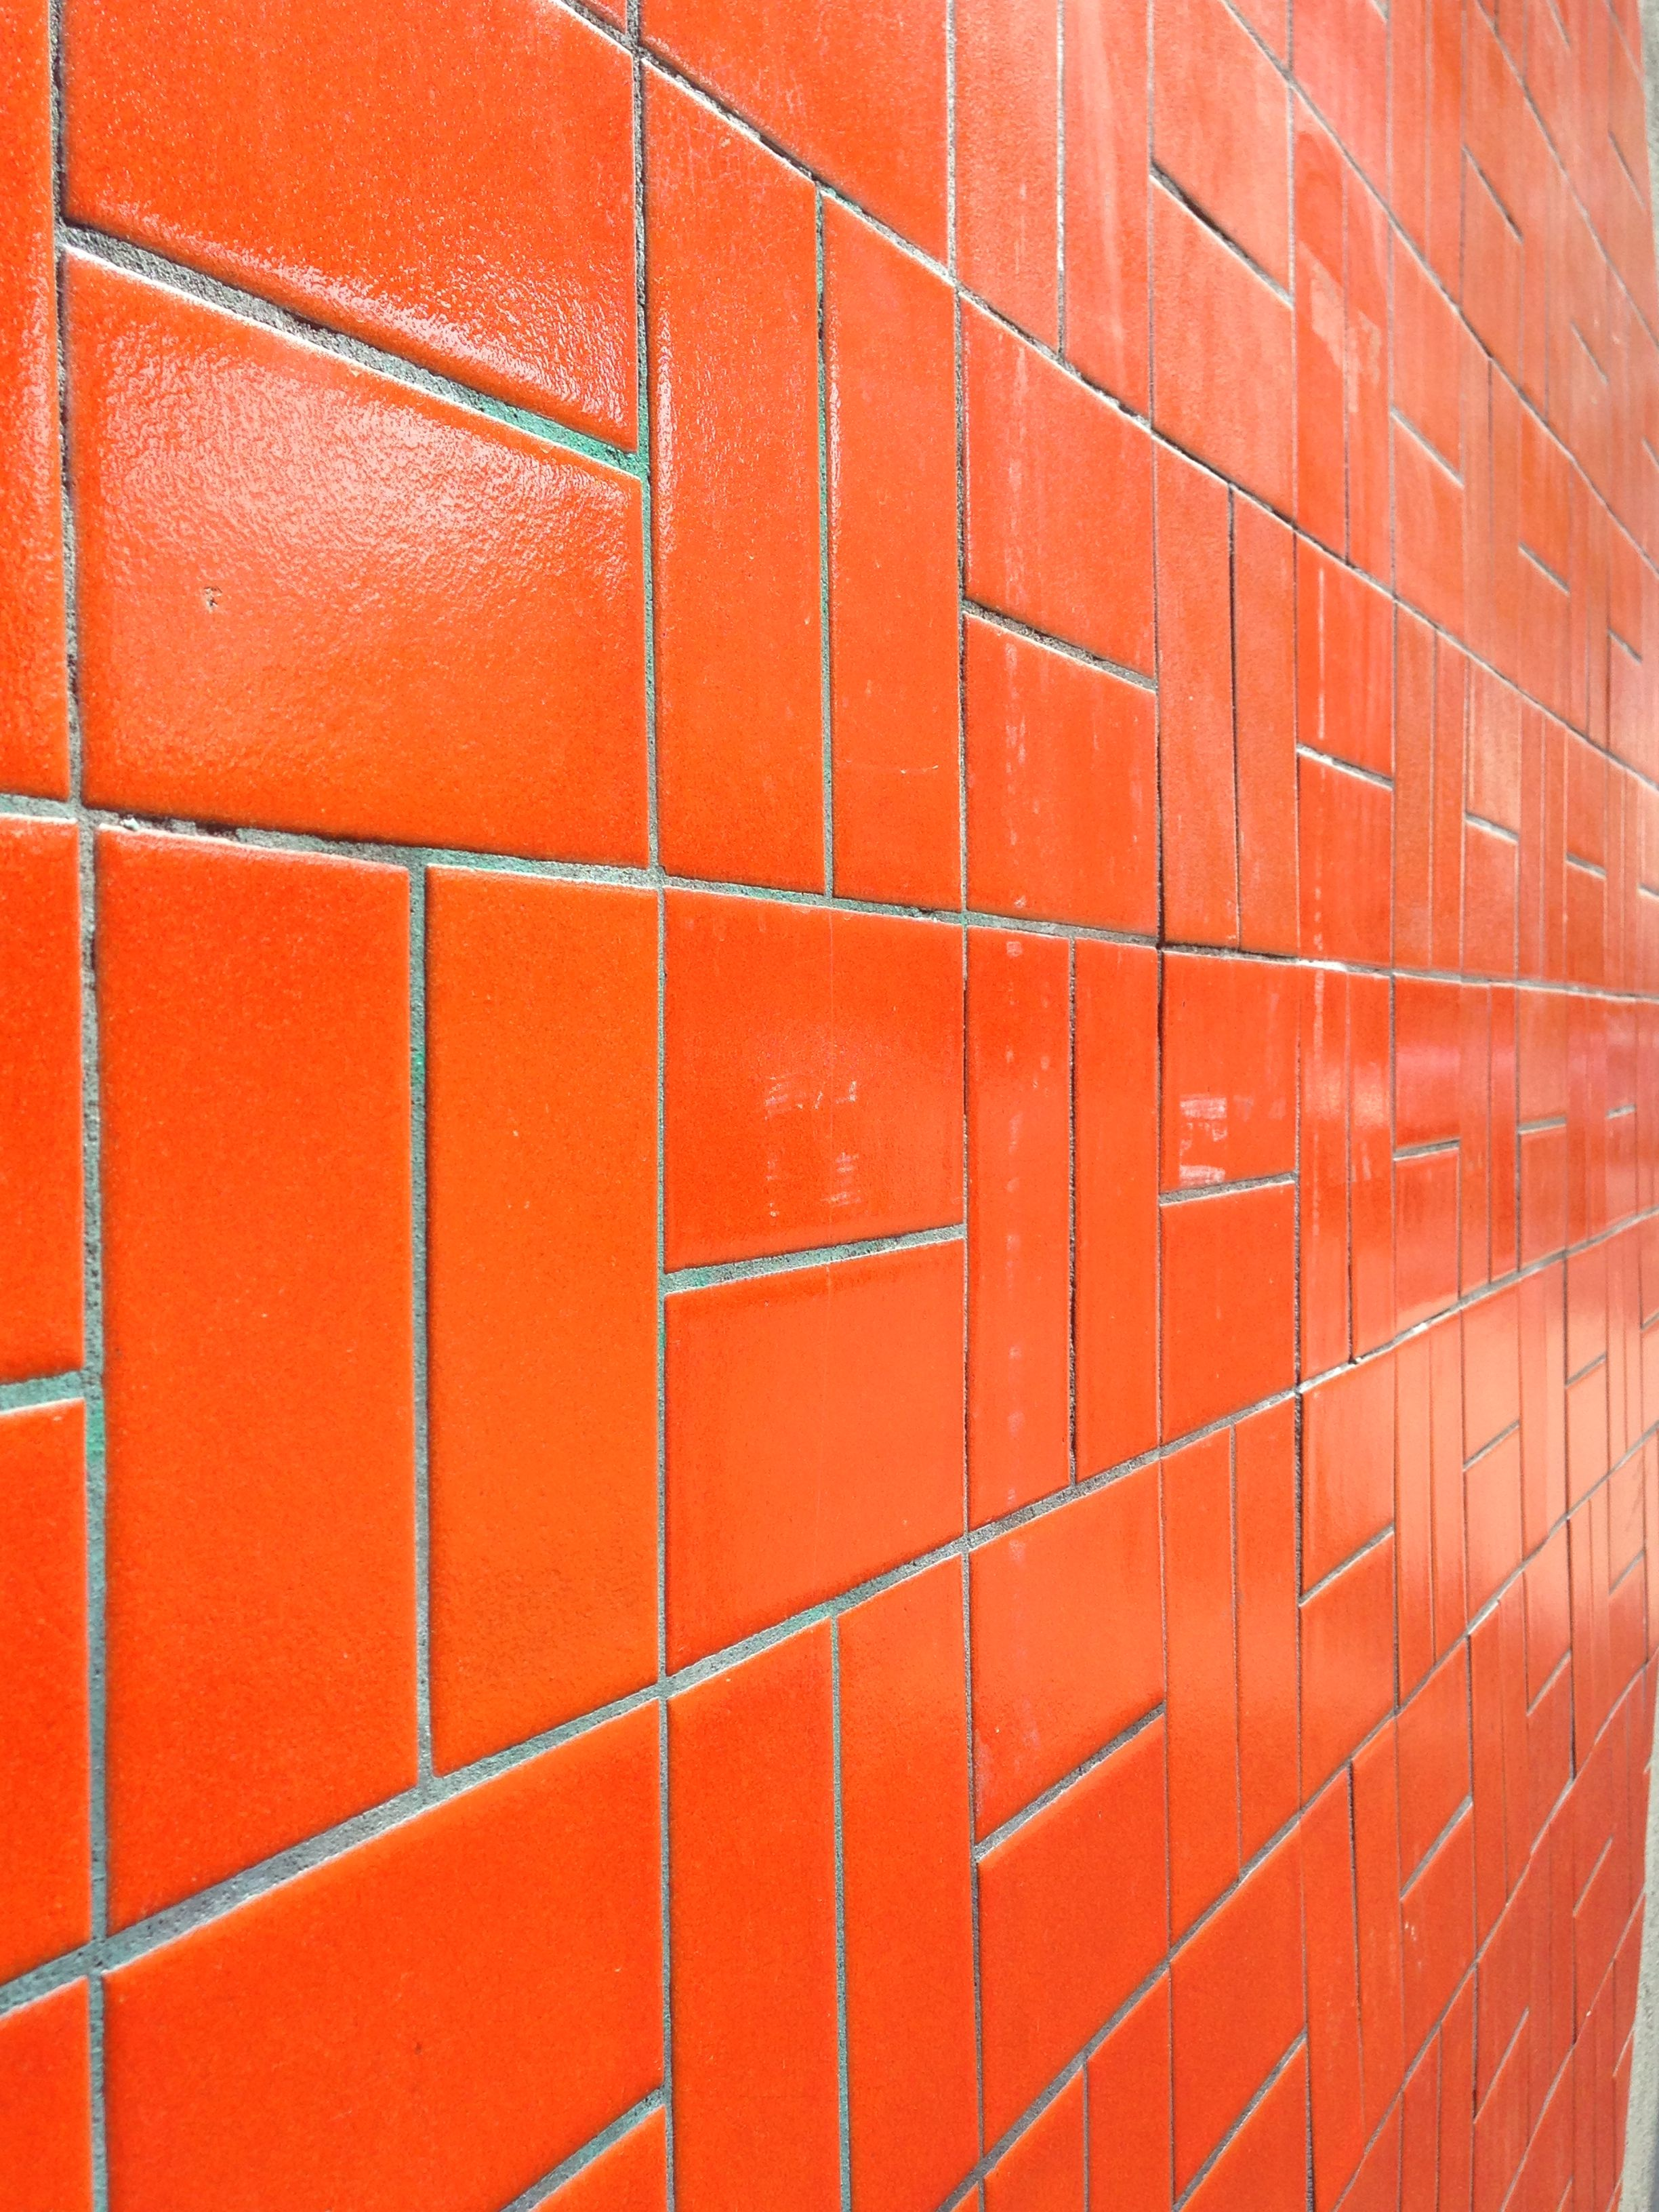 E Up Your Kitchen Or Bathroom With A Nice Orange Tile